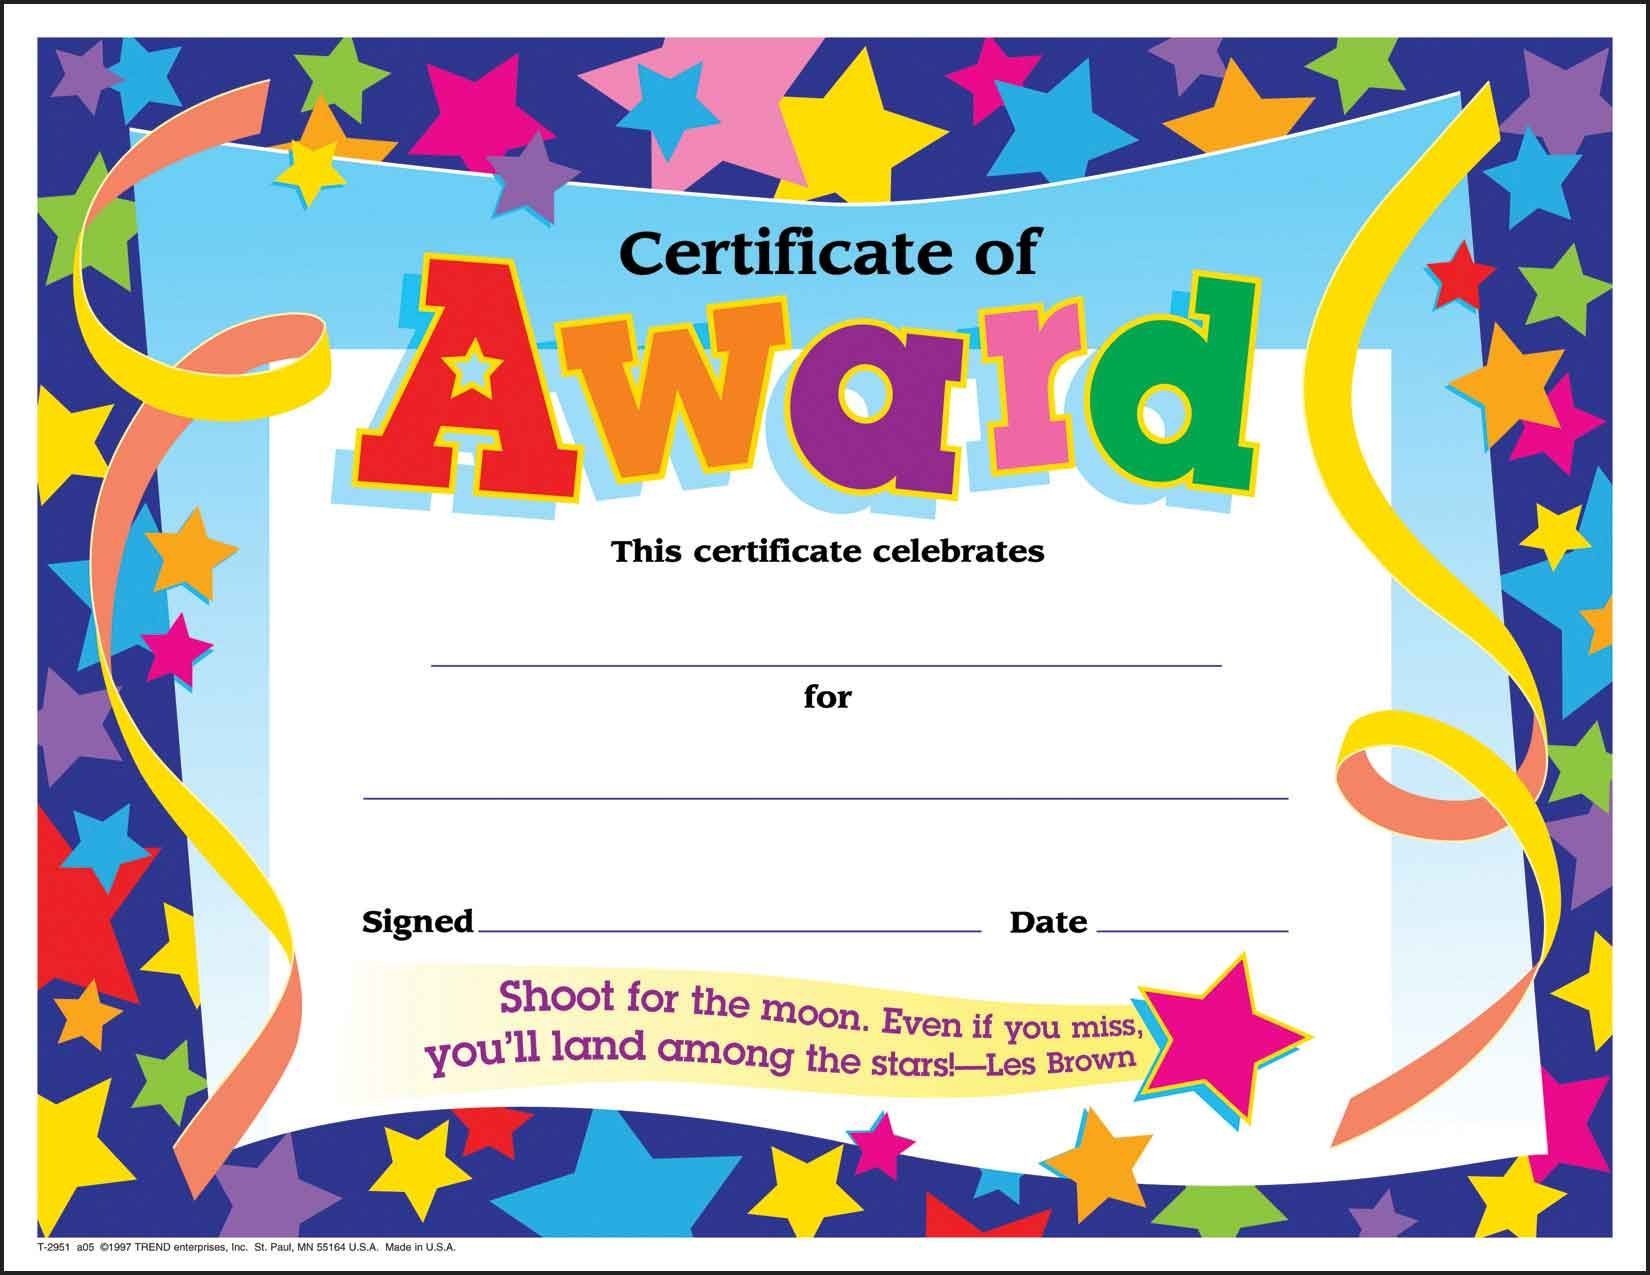 Certificate Template For Kids Free Certificate Templates - Free Printable Student Award Certificate Template